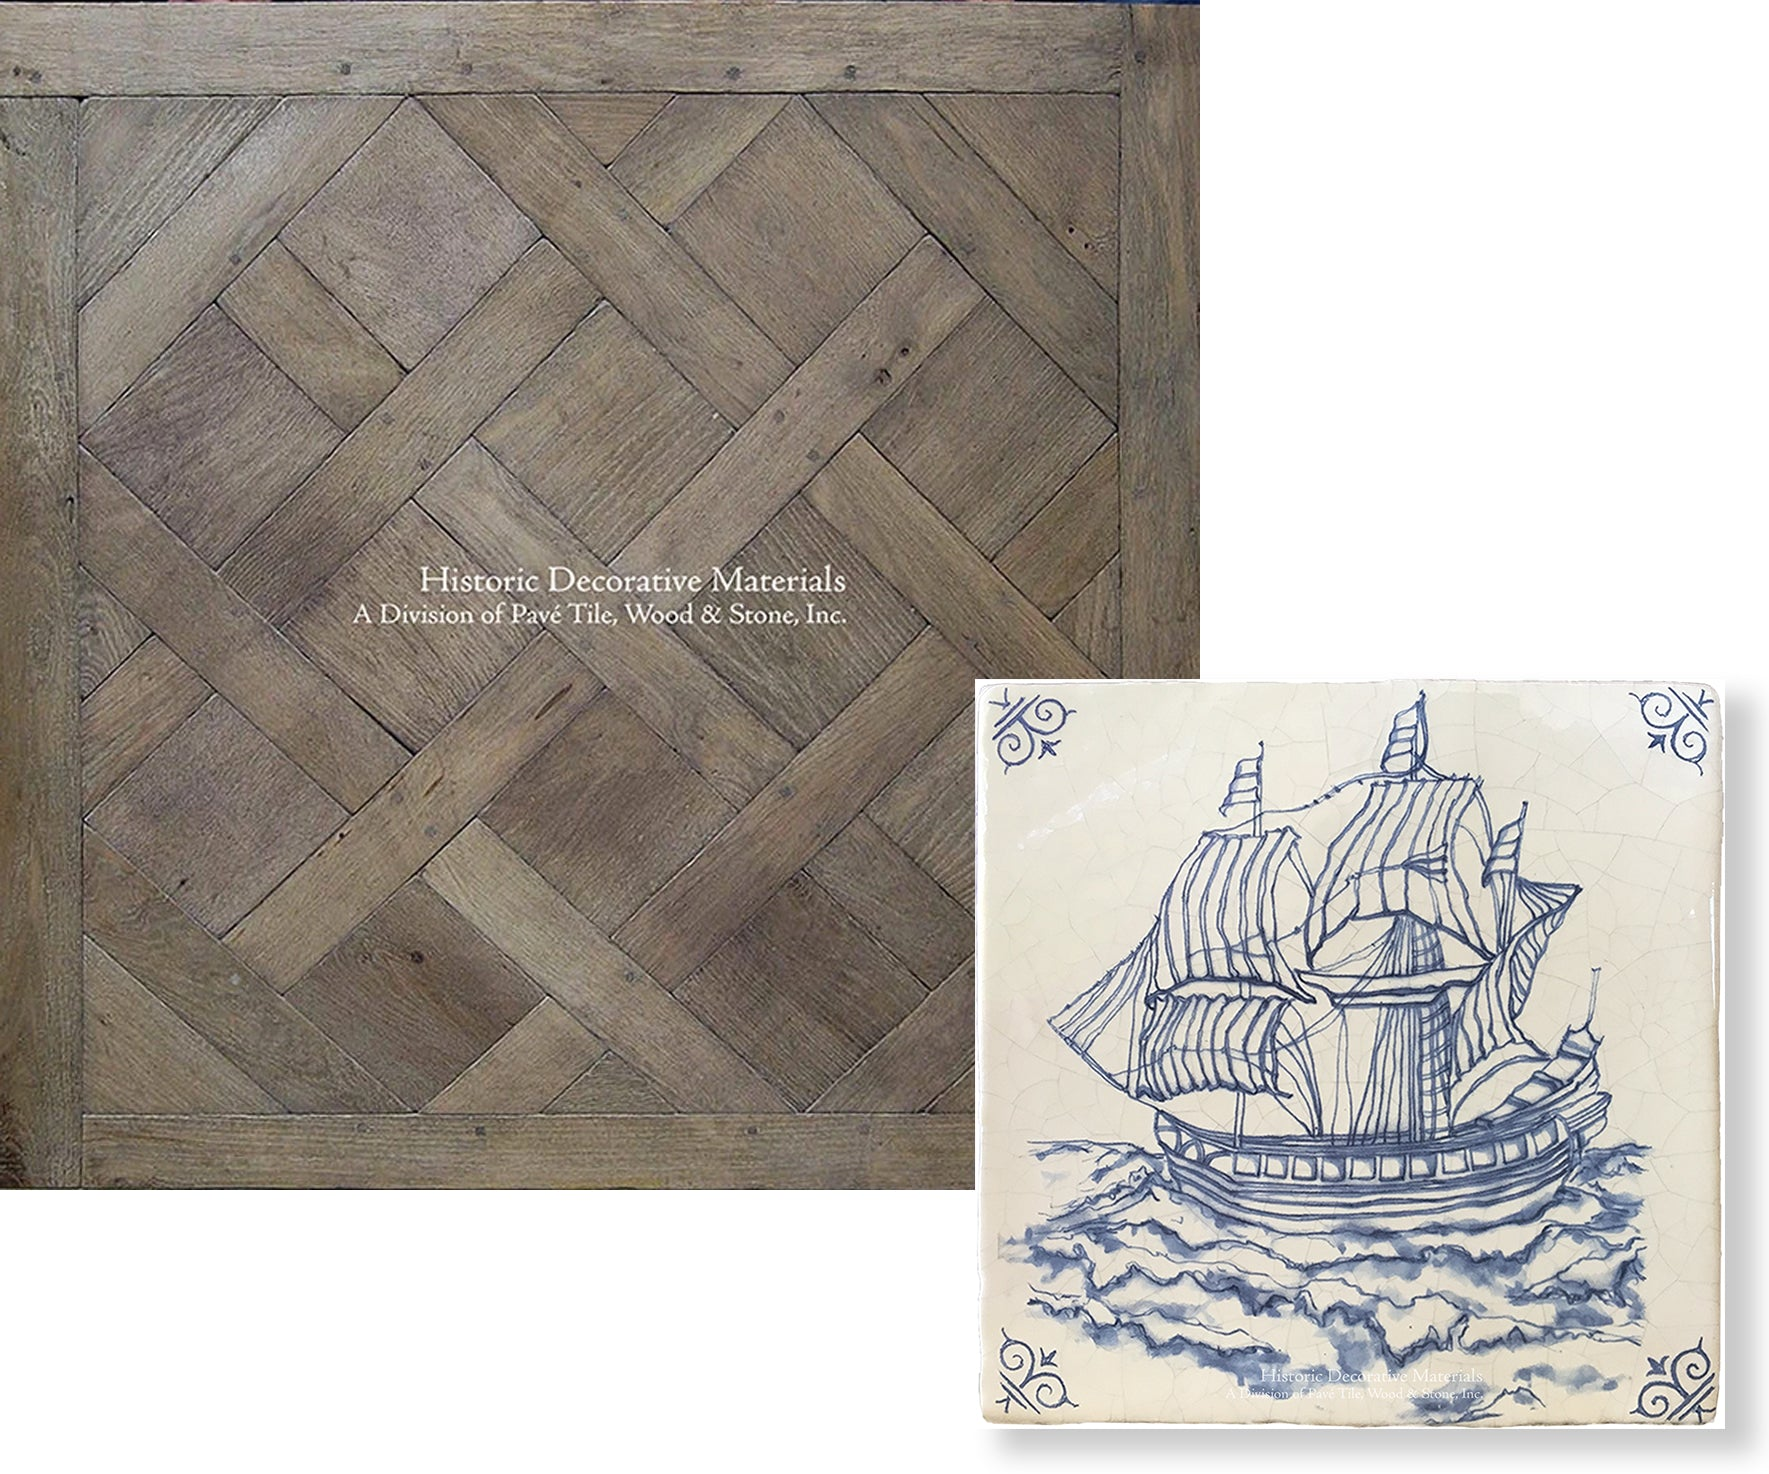 Historic Antique Dutch Blue Delft Tile is for the kitchen back splash, fireplace surround and bathroom walls that interior designers choose for luxury, farmhouse and old world interiors